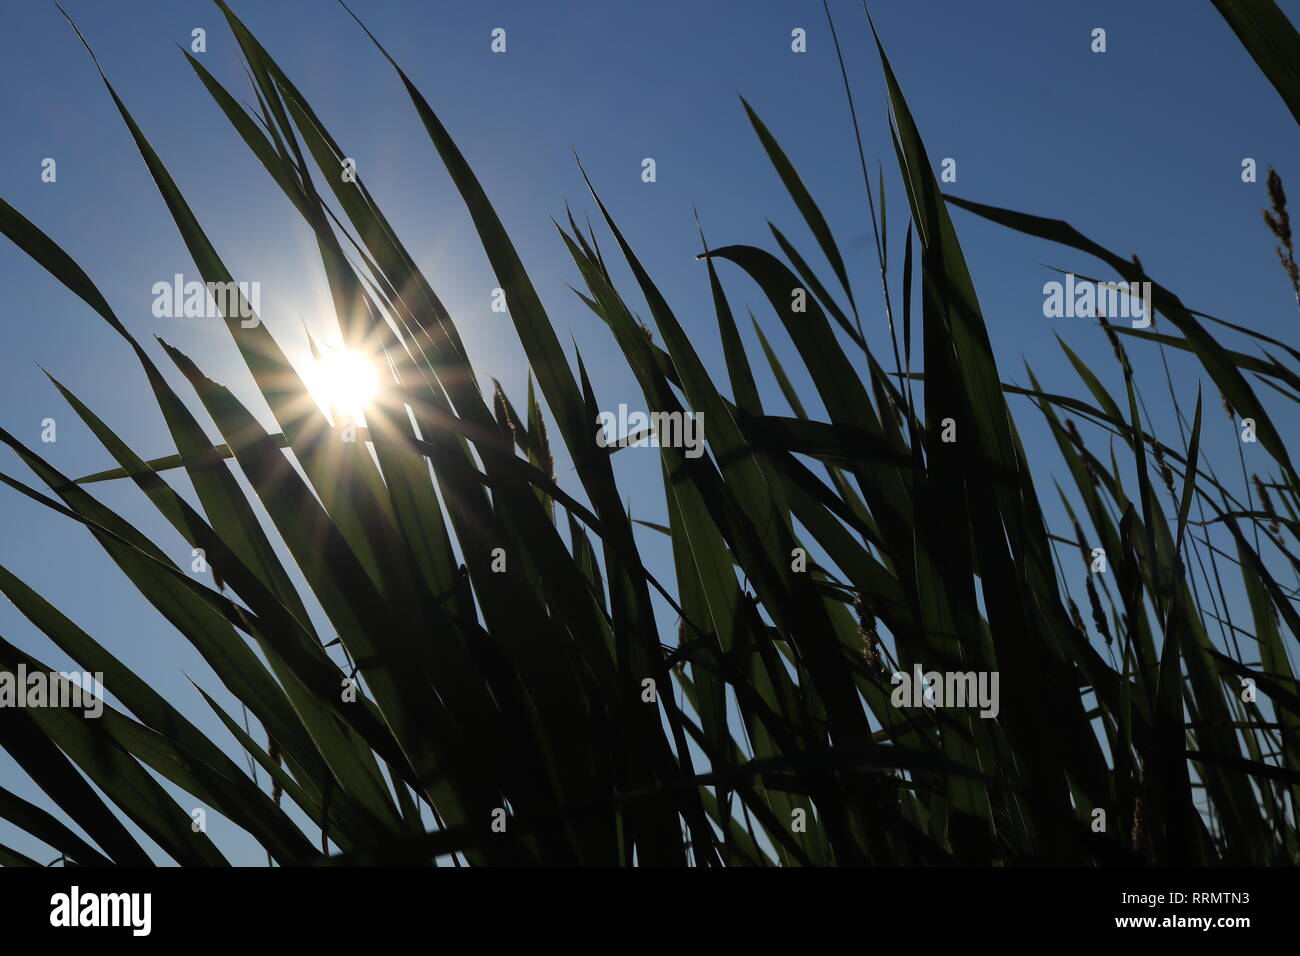 The sun shines through the silhouettes of large cane leaves. Summer background texture. - Stock Image